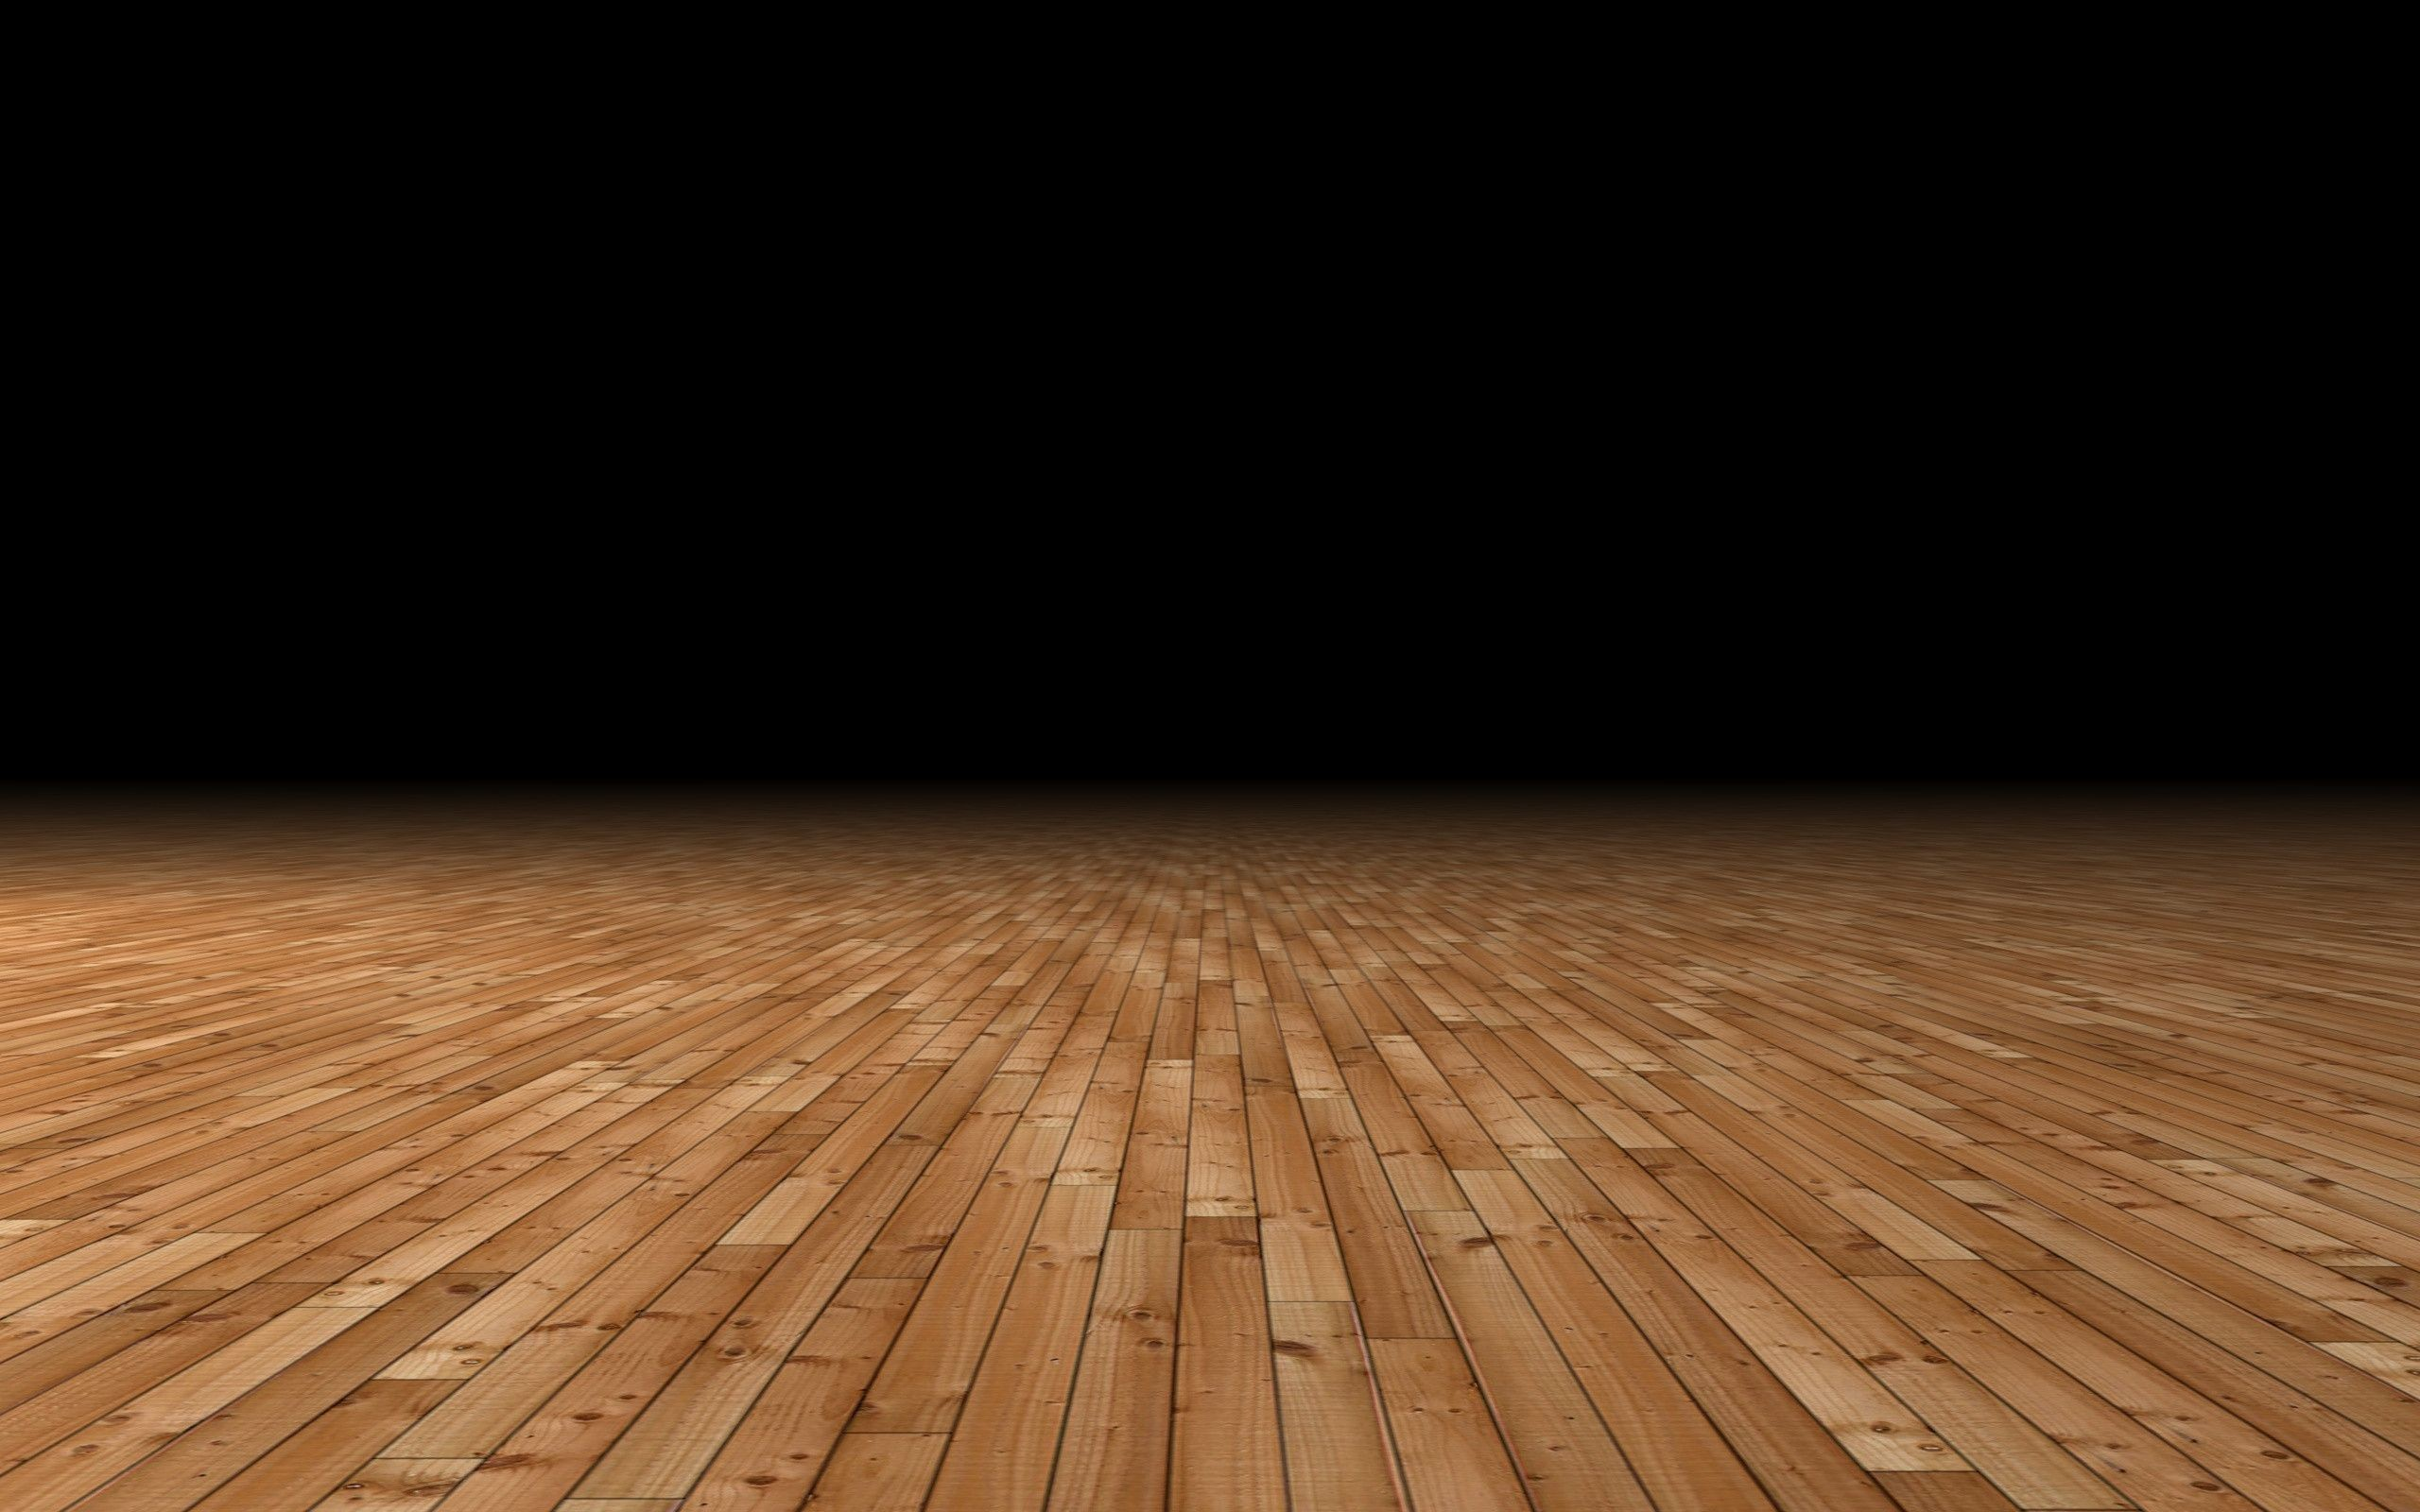 Top Hd Wallpapers For Android Basketball Court Background 183 ① Download Free High